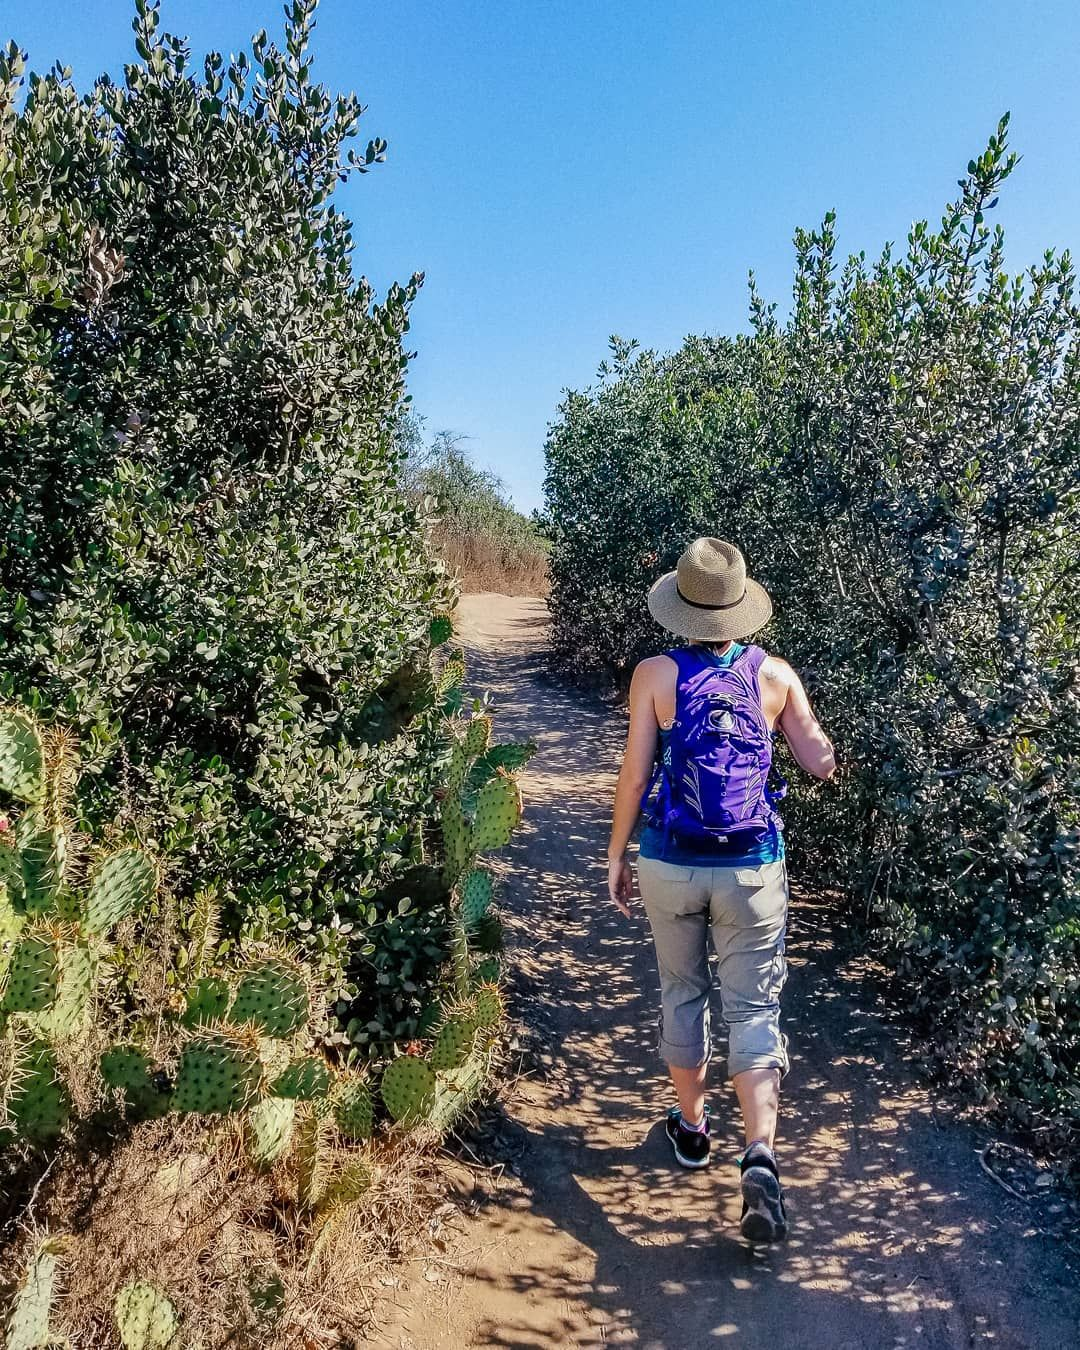 Hiking at Aliso and Wood Canyons Wilderness Park in Orange County, California | California Hiking | California travel, California hikes, Hiking spots